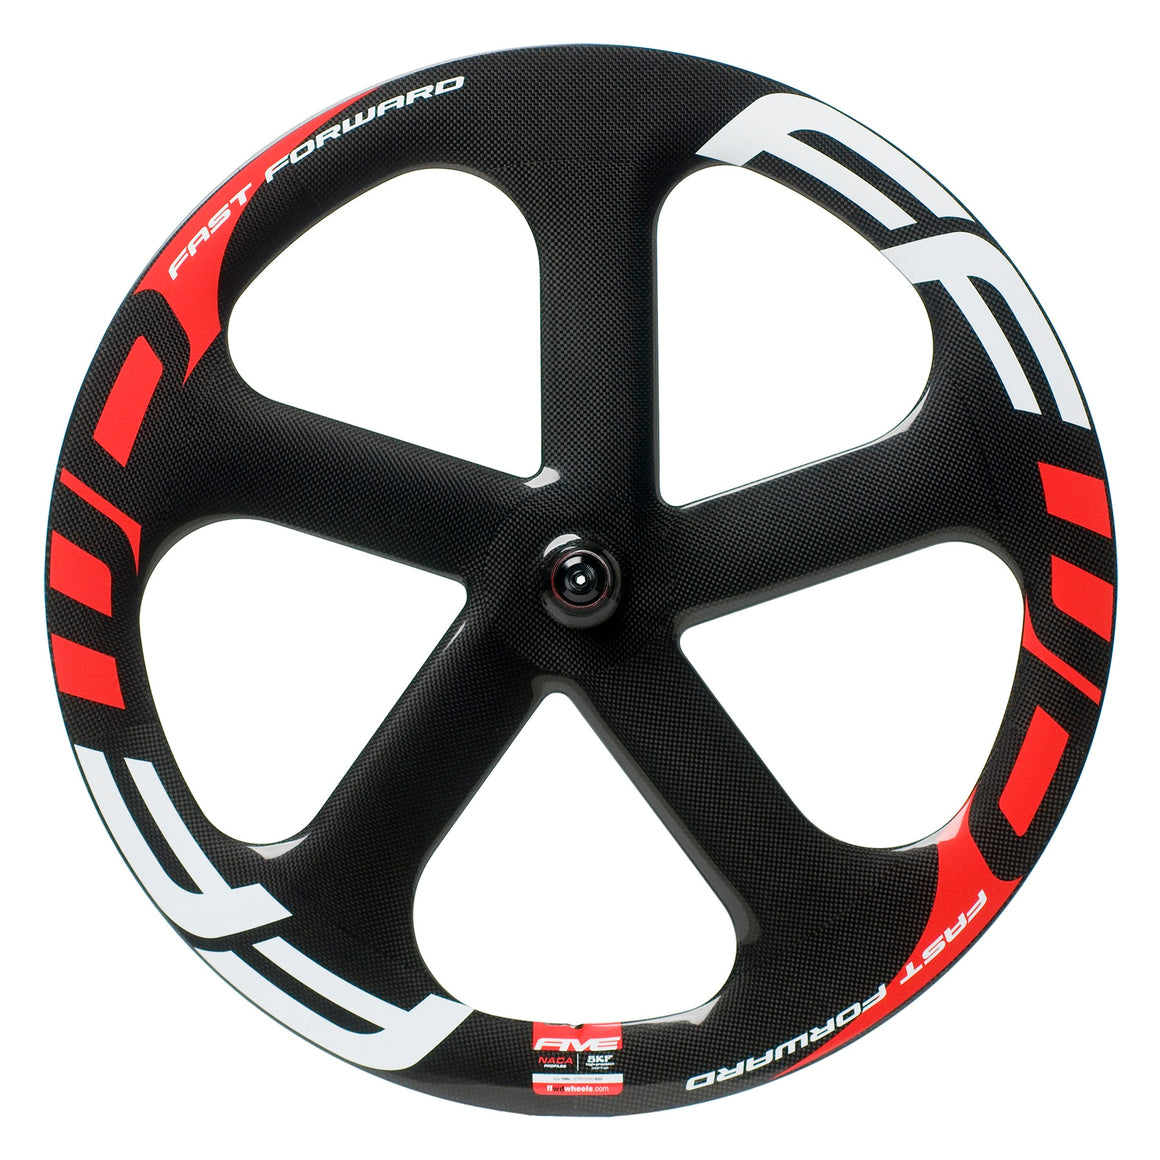 FFWD - Carbon Tubular Five Spoke - Front Wheel - Bike Wheels